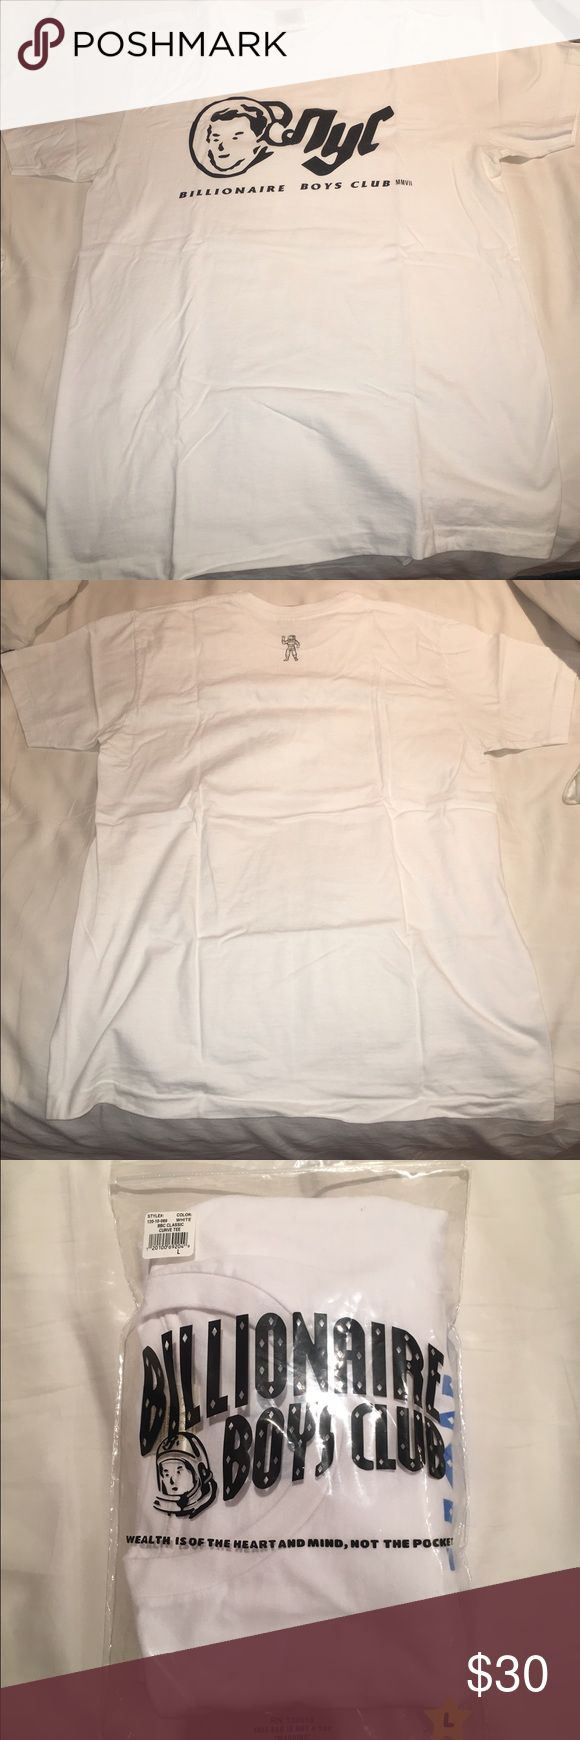 Brand New Billionaire Boys Club T-Shirt Brand new, never worn, comes with original packaging Billionaire Boys Club Shirts Tees - Long Sleeve